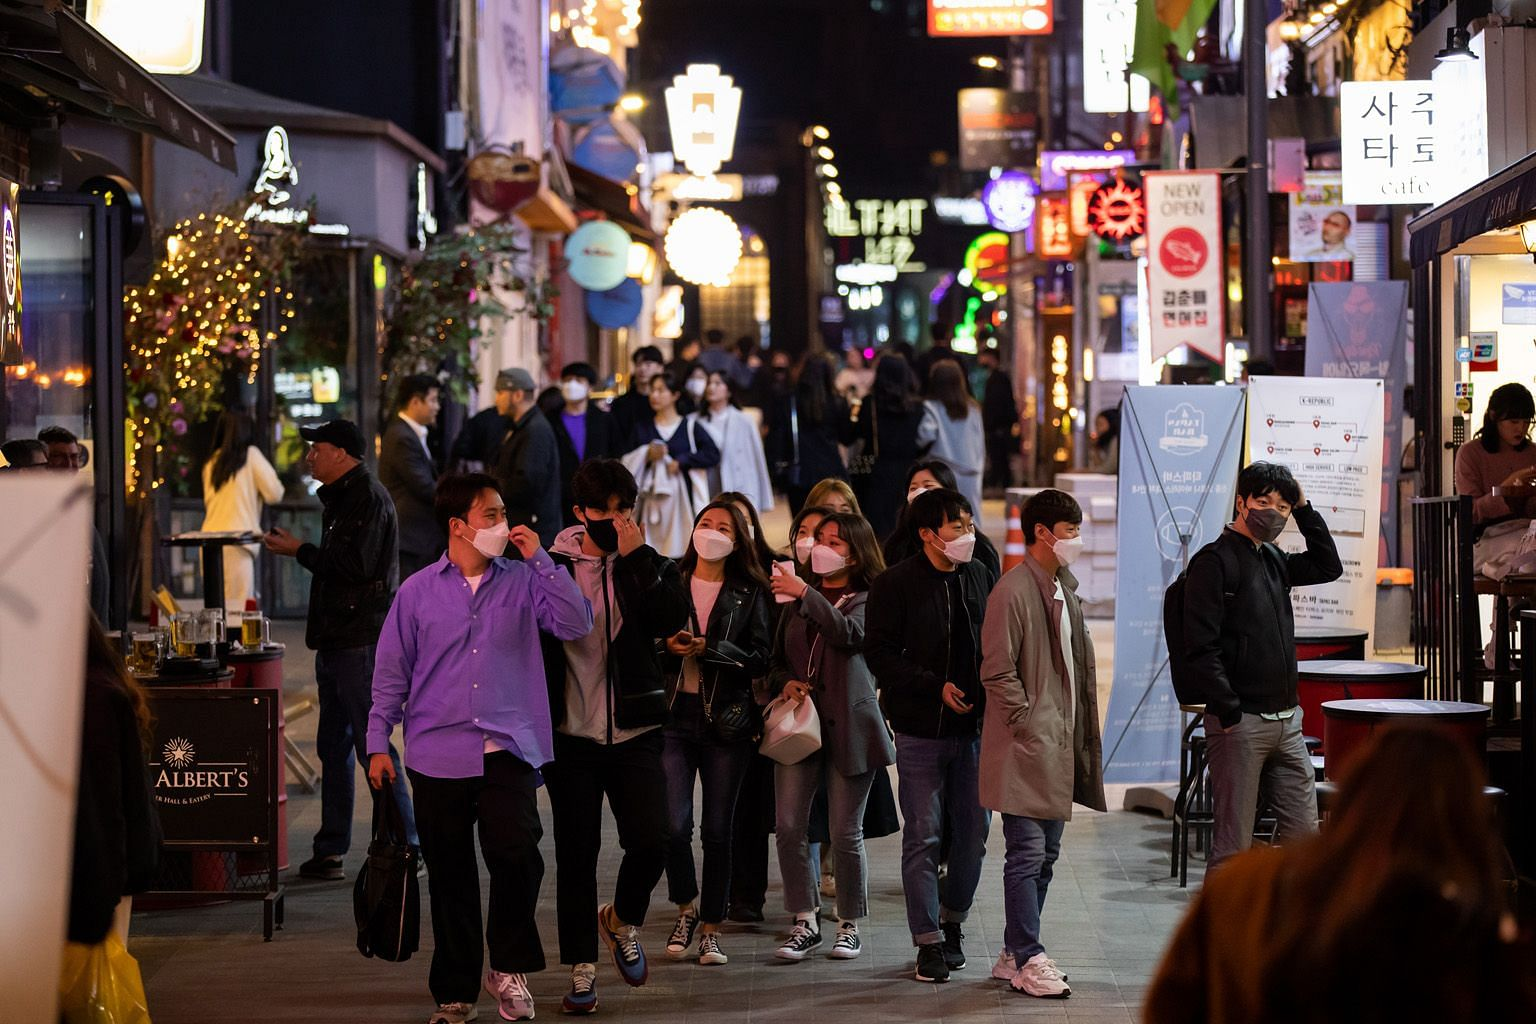 People in the popular Itaewon district in Seoul on April 24. Concern is rising over possible new clusters forming over the recent long weekend due to three back-to-back public holidays from April 30 to May 5, as hundreds of thousands of people travel